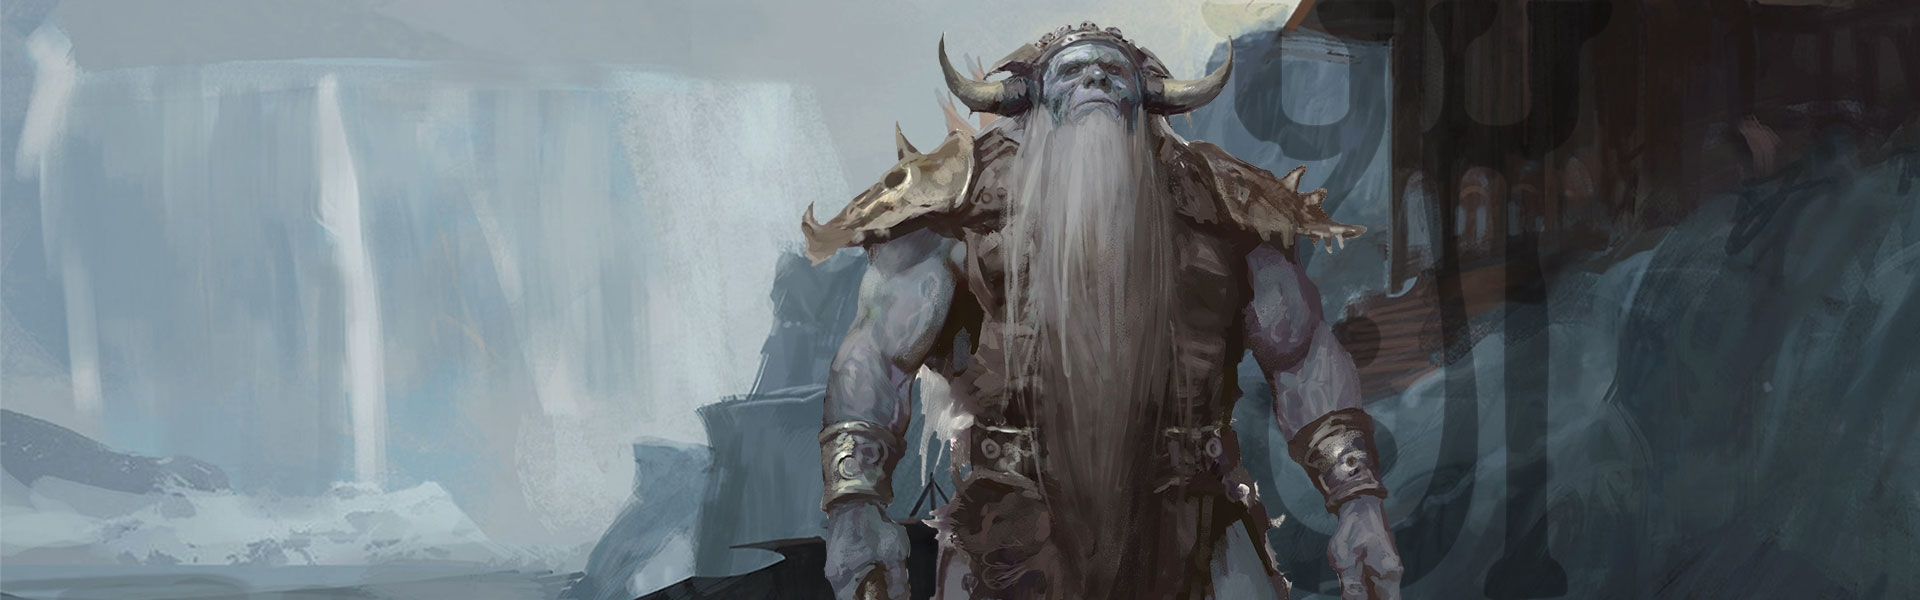 Frost_Giant_Subsection_Hero_Image